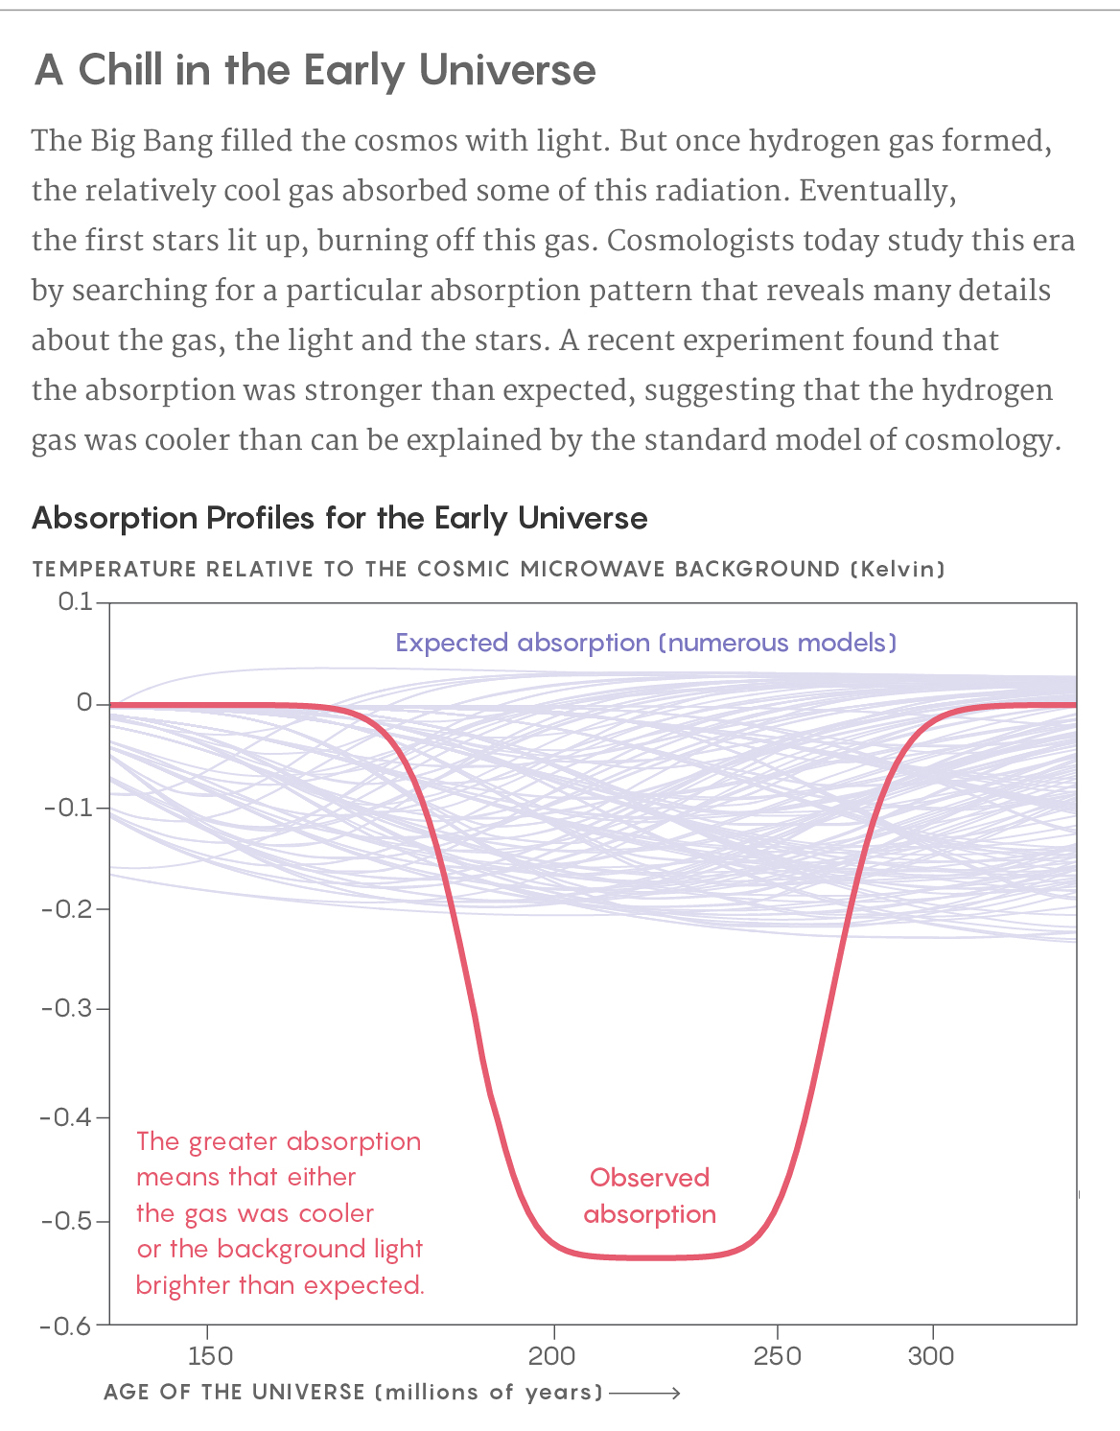 Graph showing absorption profiles for the early universe.